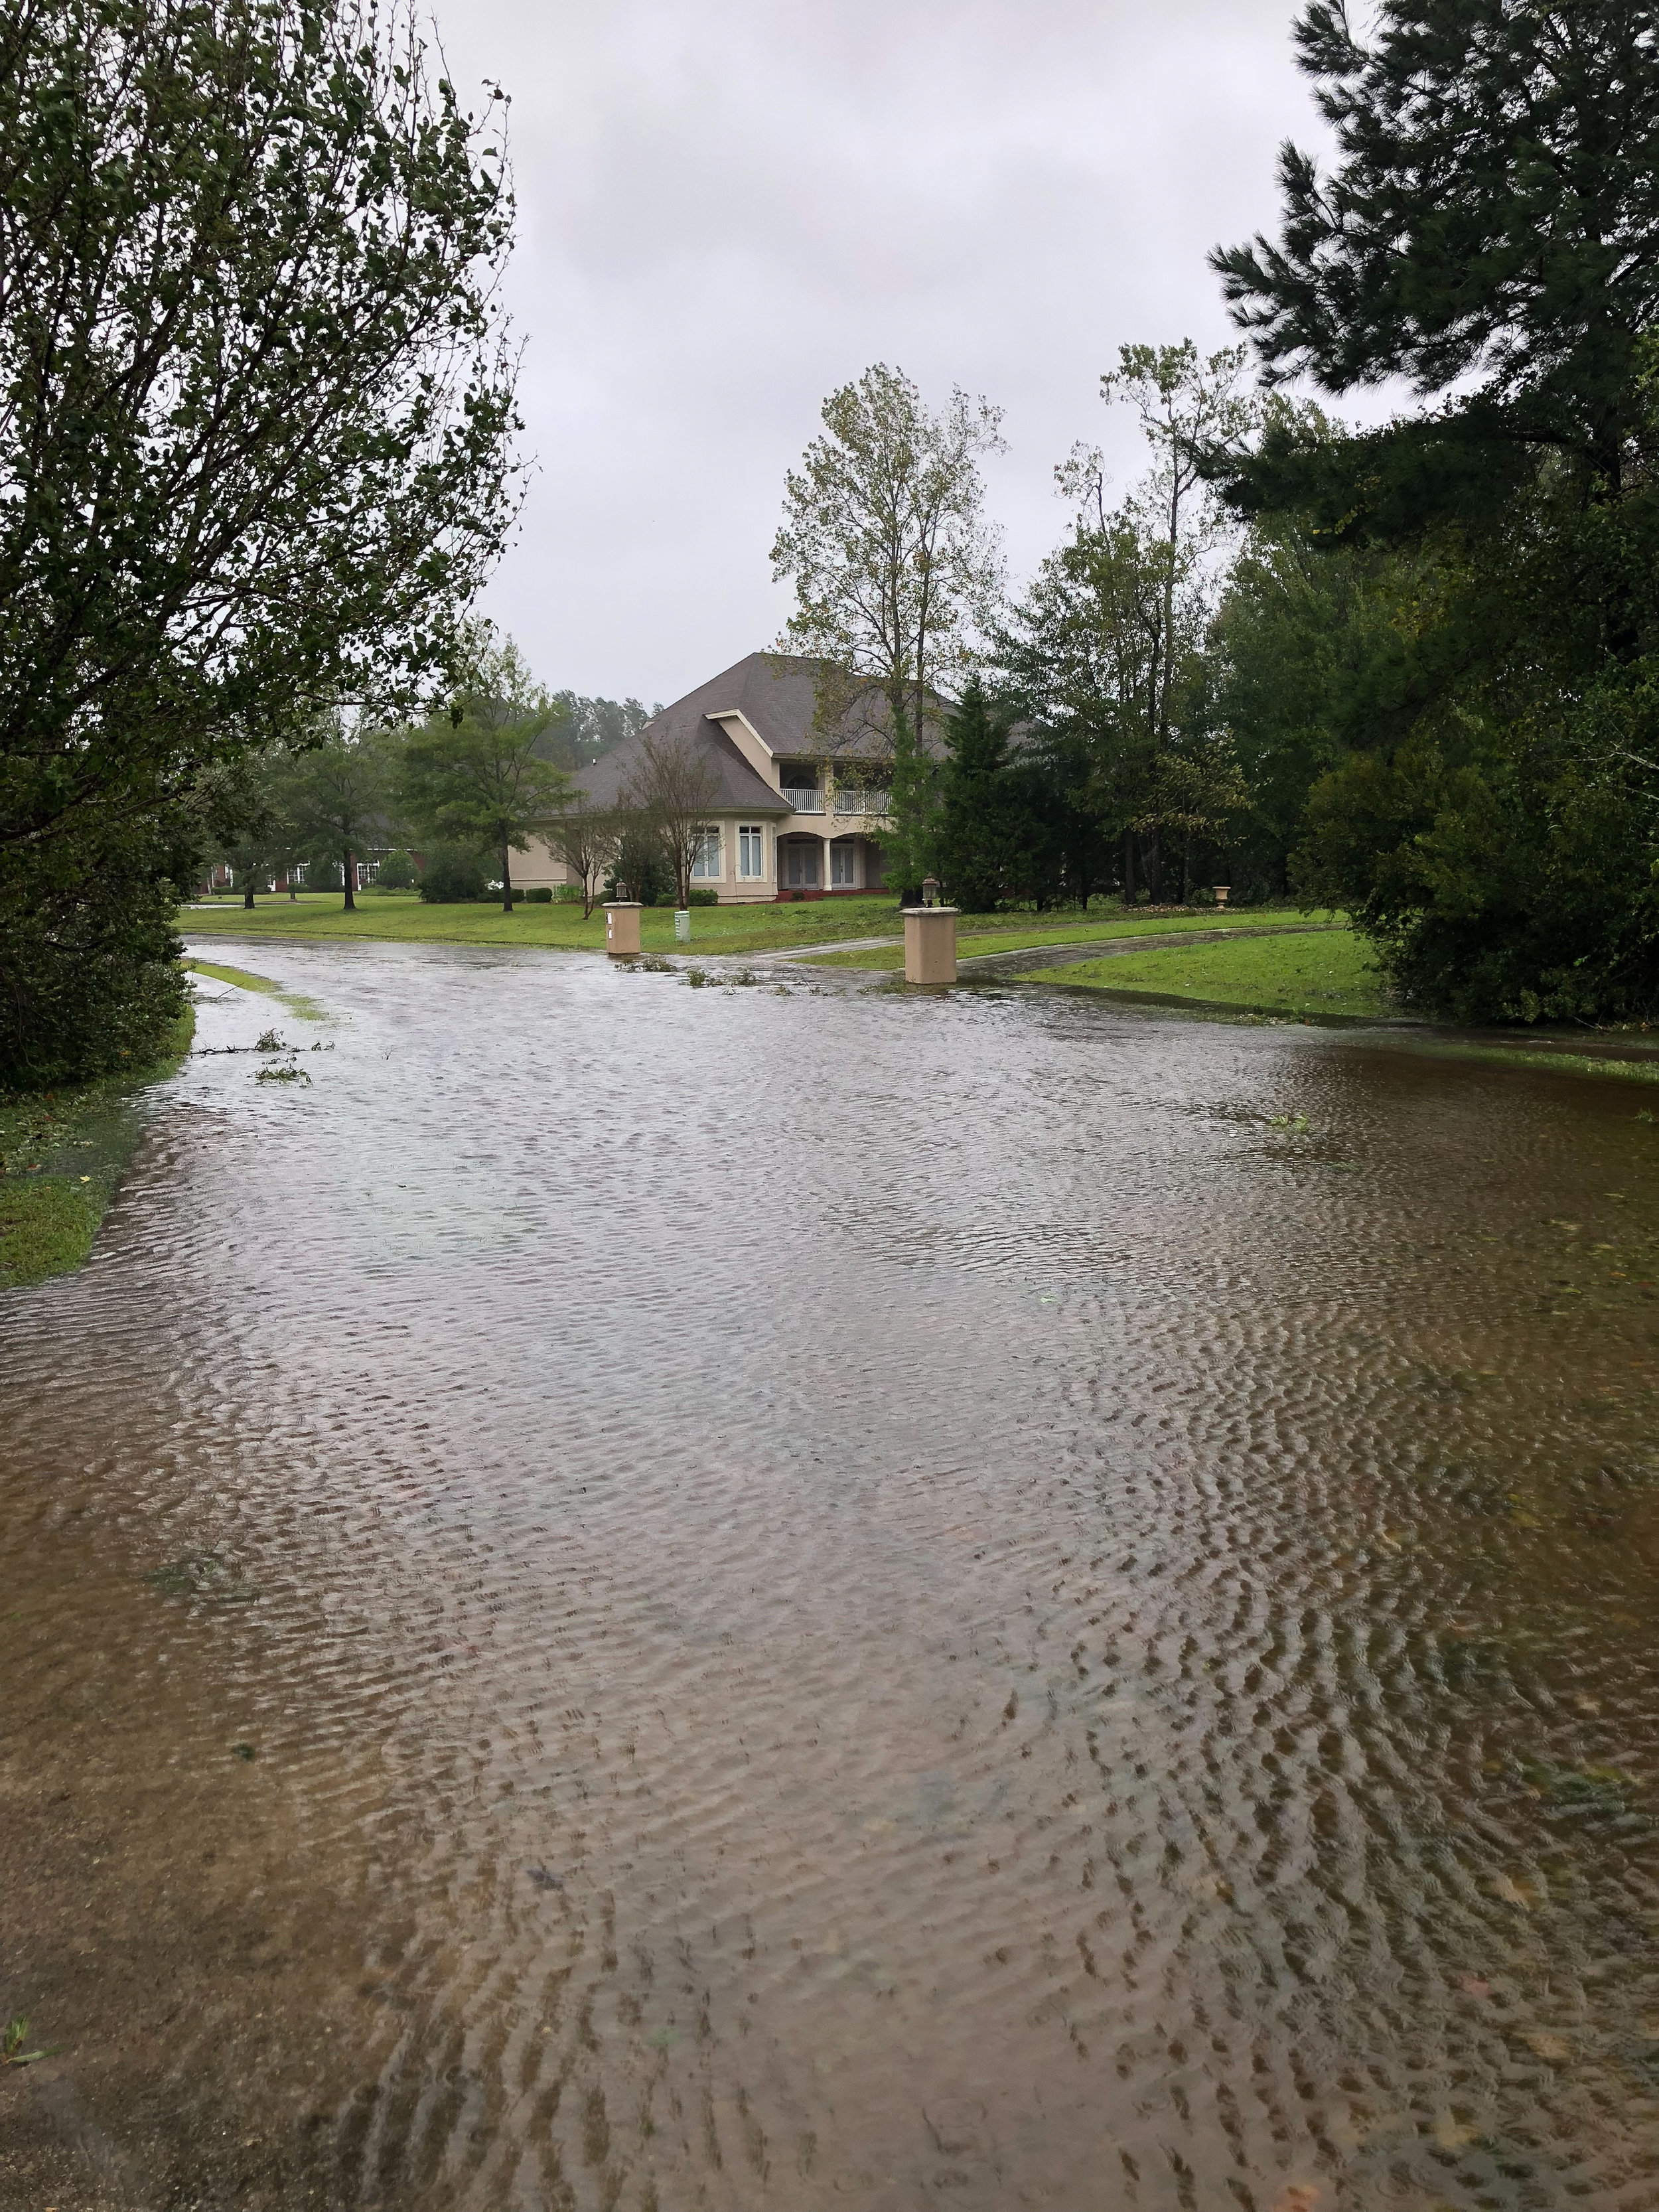 Flooding down our block during the storm. Thank the Lord it subsided, we know many whose homes are under water.